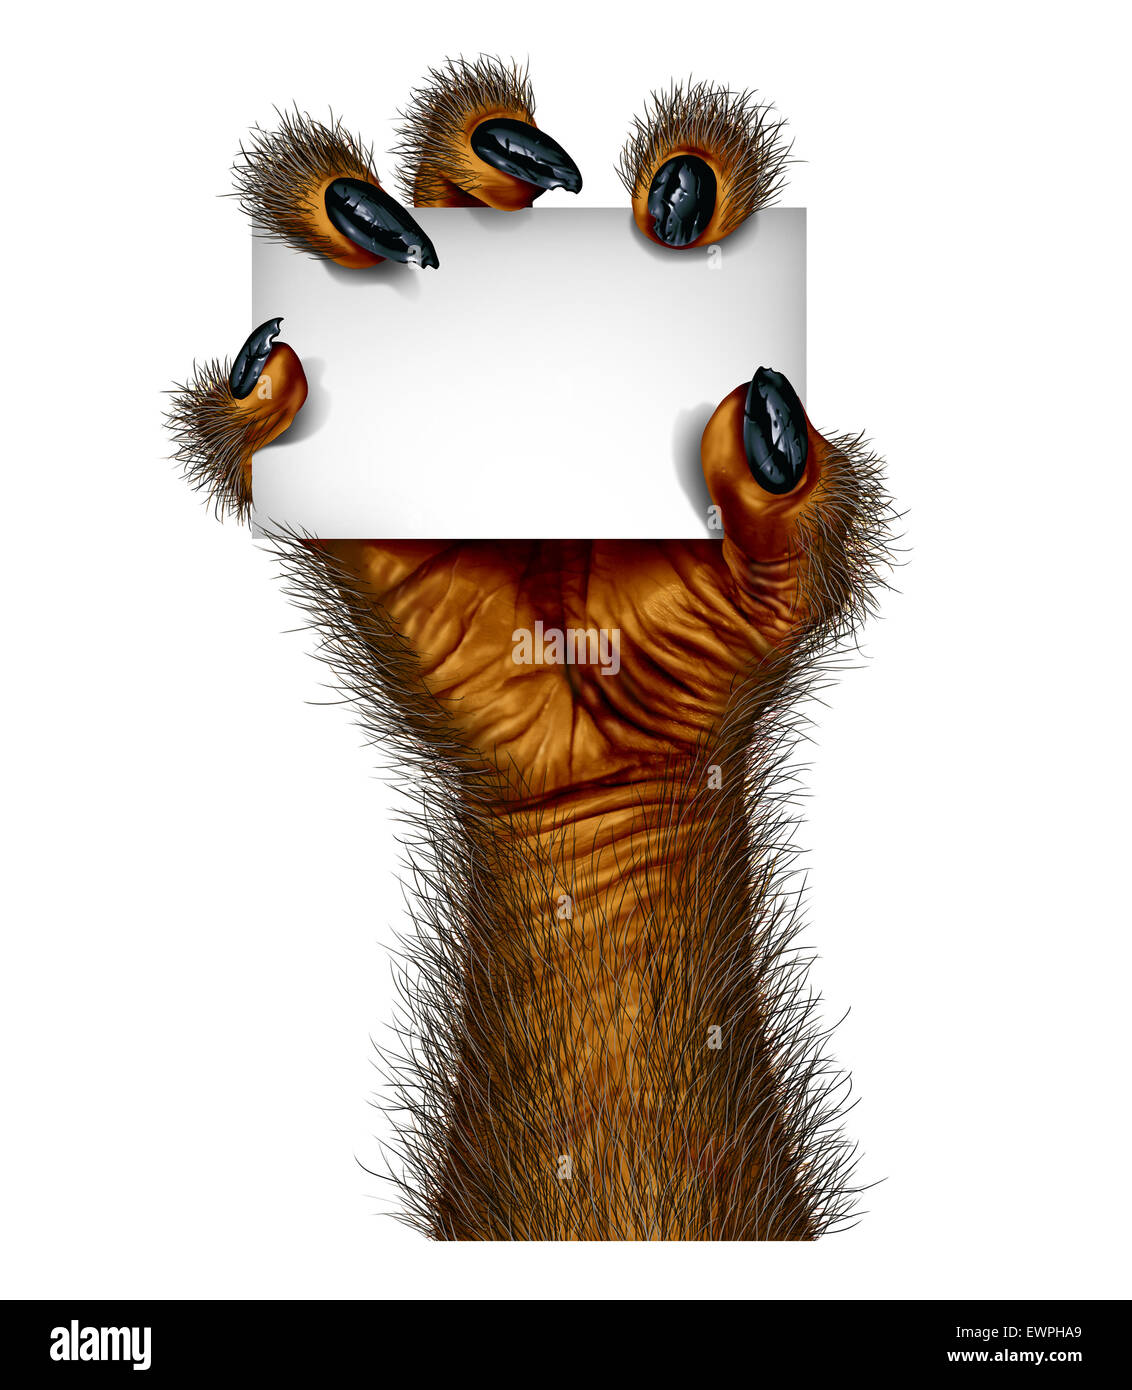 Werewolf hand holding a blank card sign as a creepy creature for halloween or scary symbol with textured hairy and - Stock Image